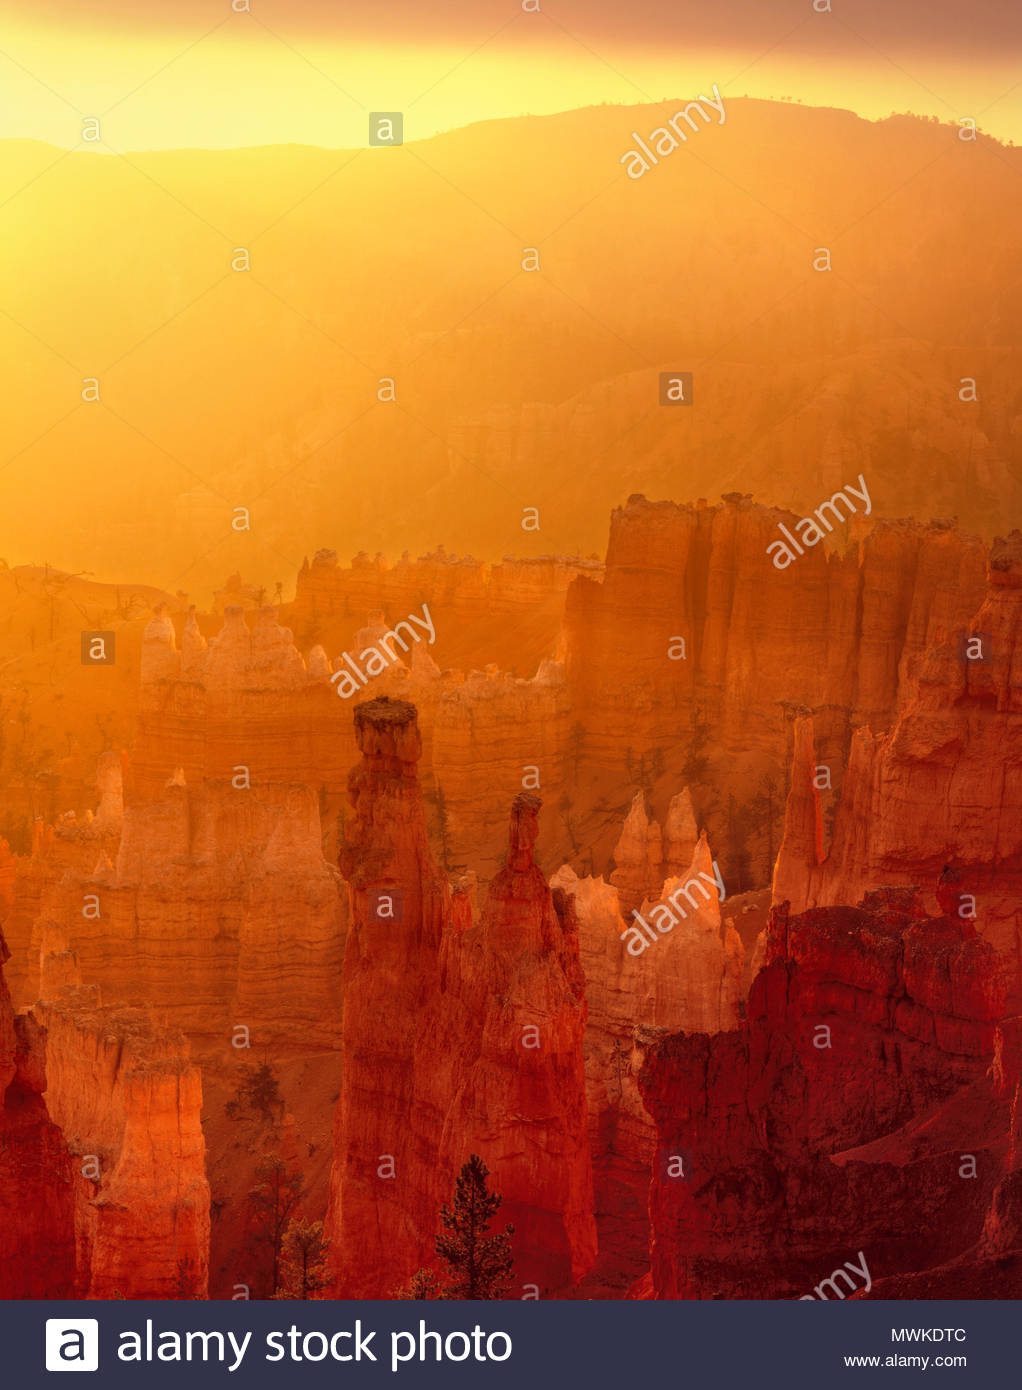 Dawn with Golden Light, Bryce Canyon National Park, Utah - Stock Image